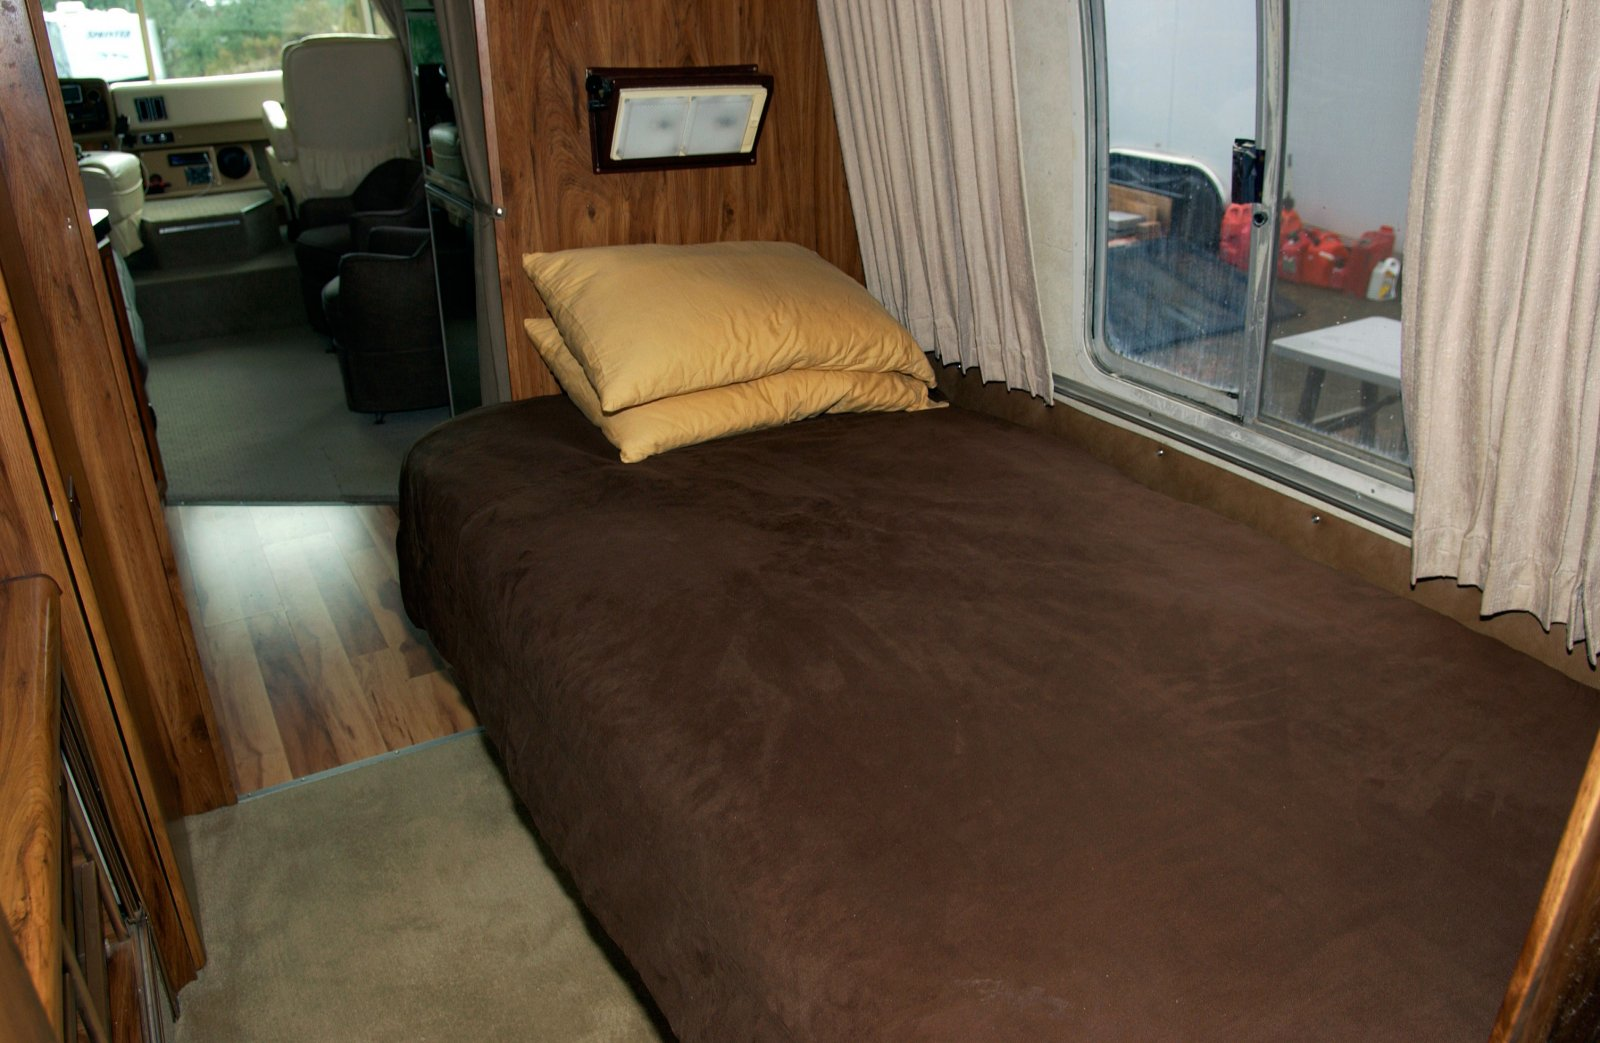 Click image for larger version  Name:Bed-web.jpg Views:88 Size:231.6 KB ID:225297